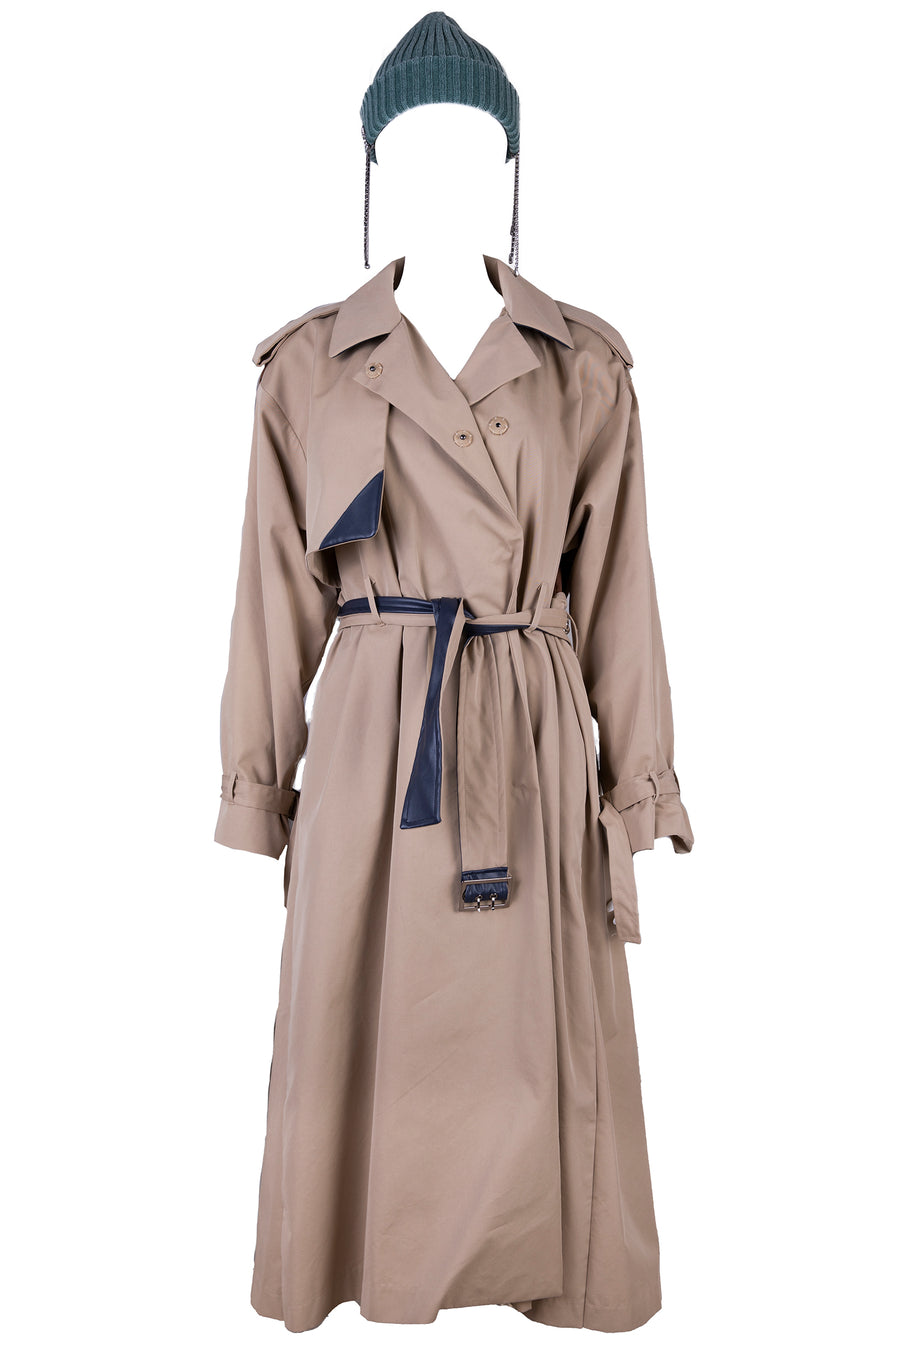 AOTC Ellin Pleats Trench Coat